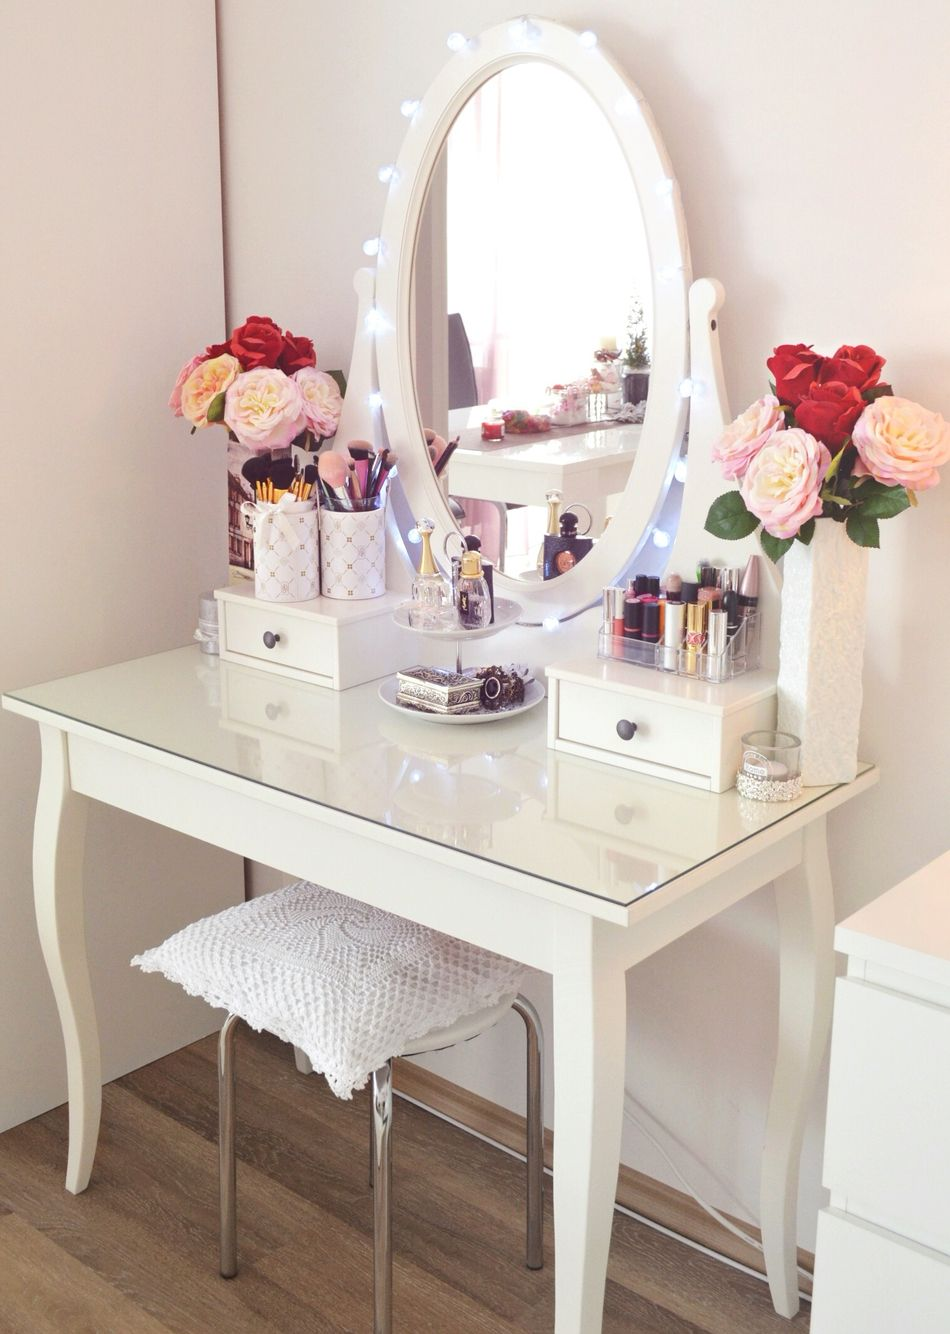 larigancea vanity dressingtable makeup desk white